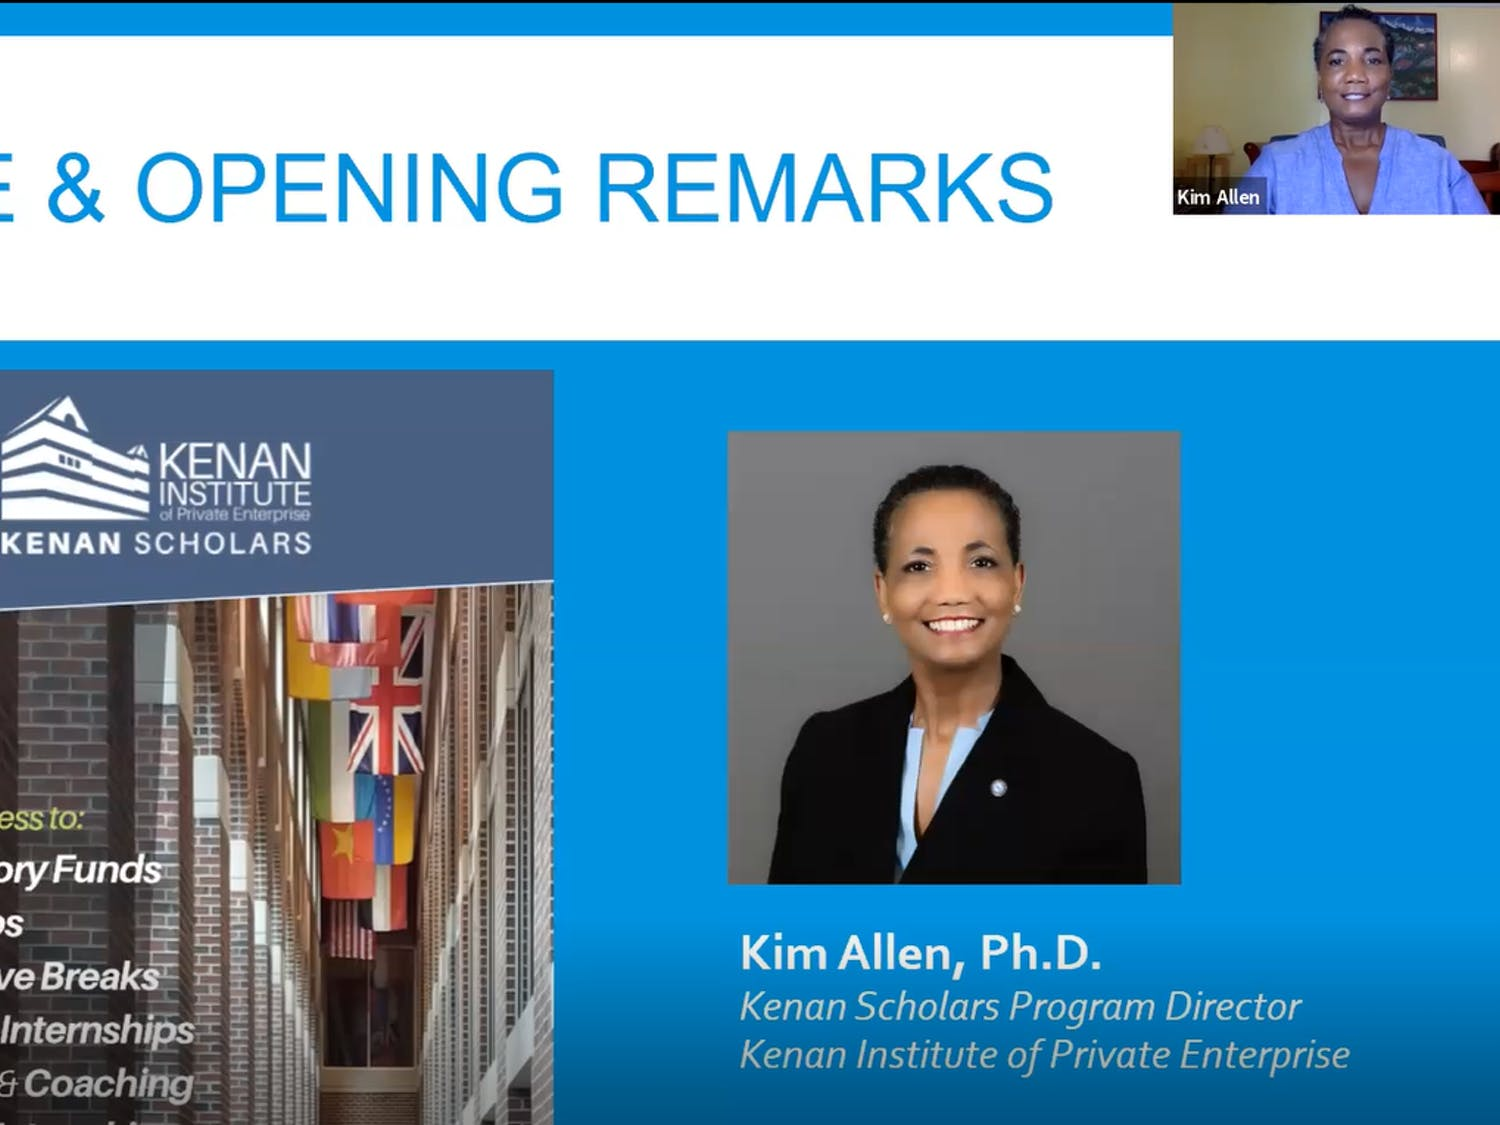 Dr. Kim Allen, Kenan Scholars Program Director, welcomes attendees to the inaugural Kenan Scholars Public Sector Showcase on Friday, Sept. 25, 2020.